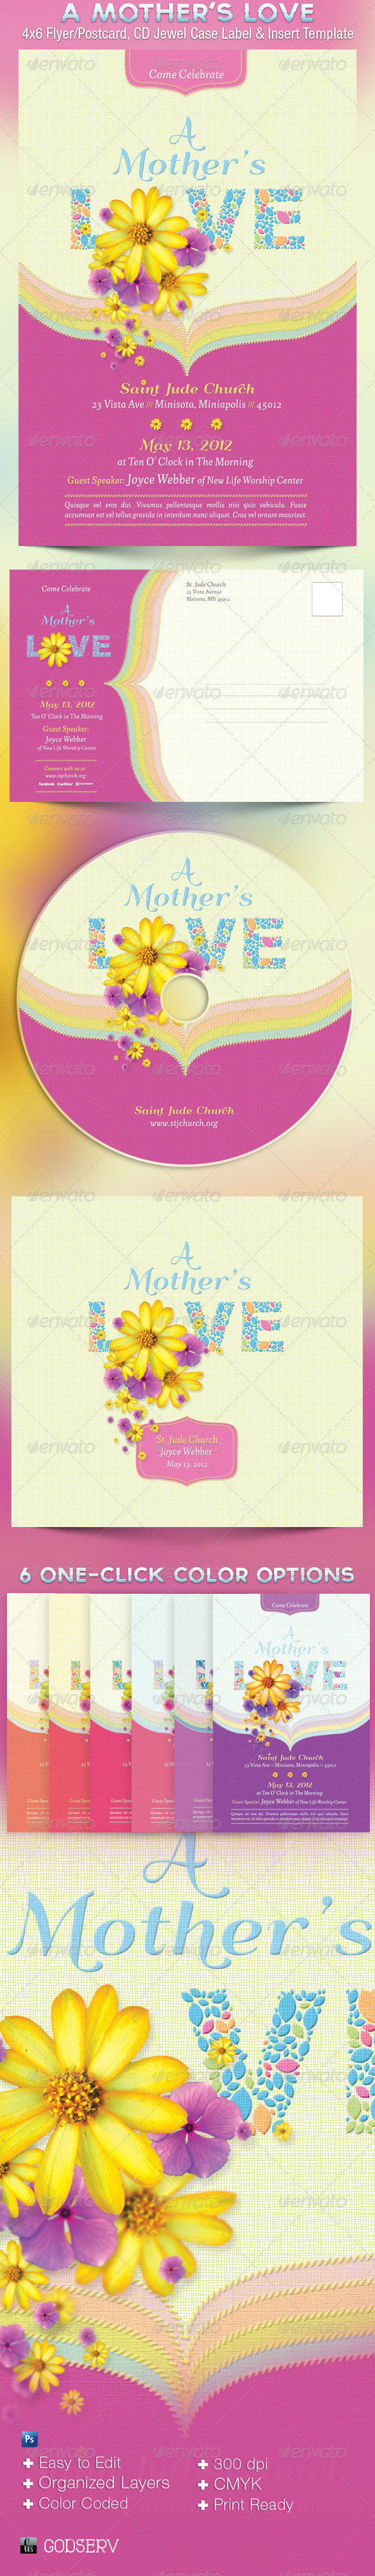 GraphicRiver A Mother's Love Flyer Postcard and CD Template 2206547